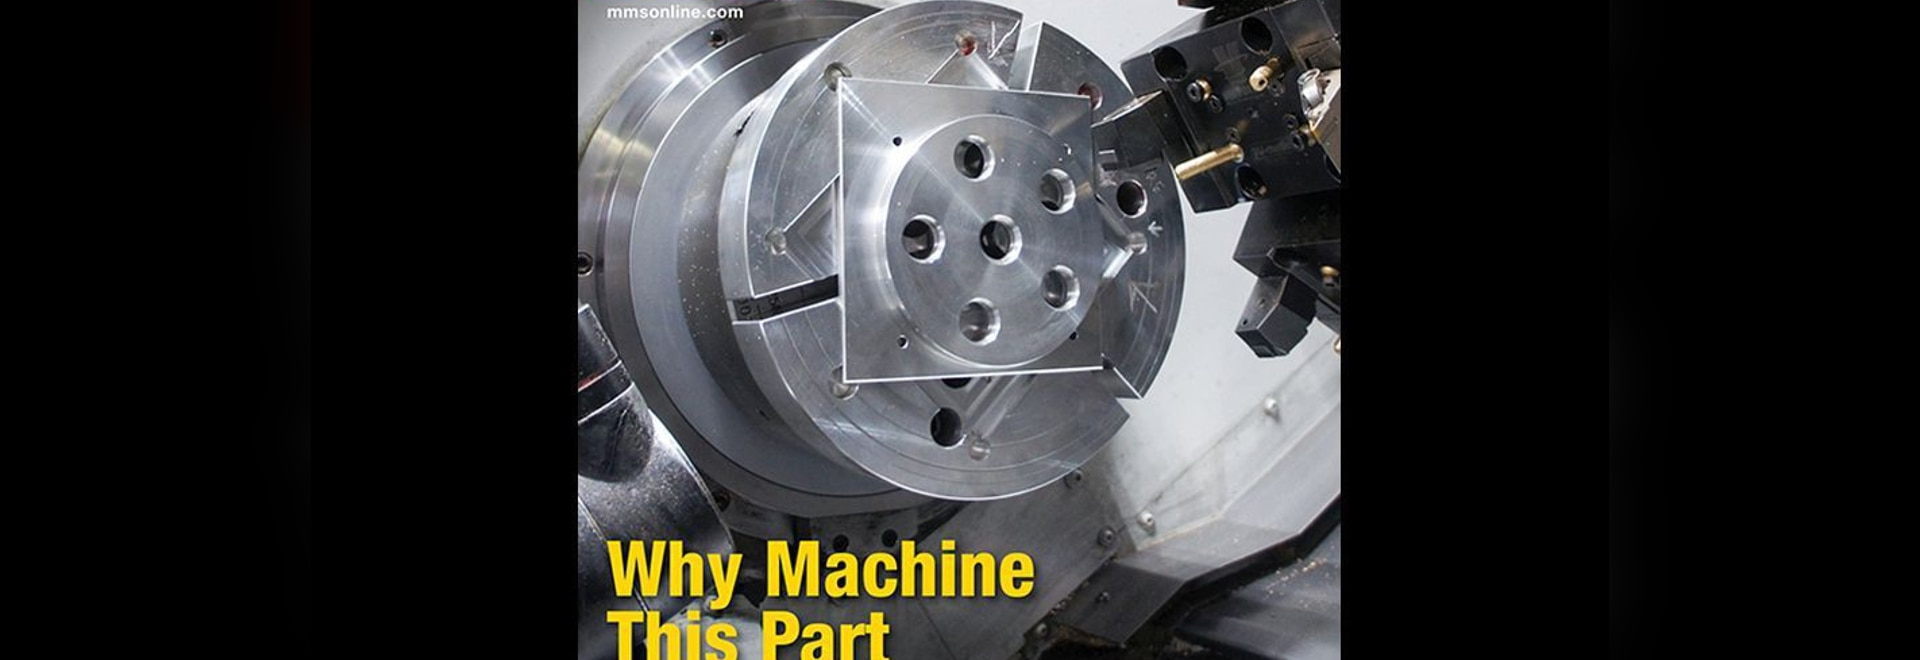 Why Machine This Part on a Lathe: February 2017 Digital Edition